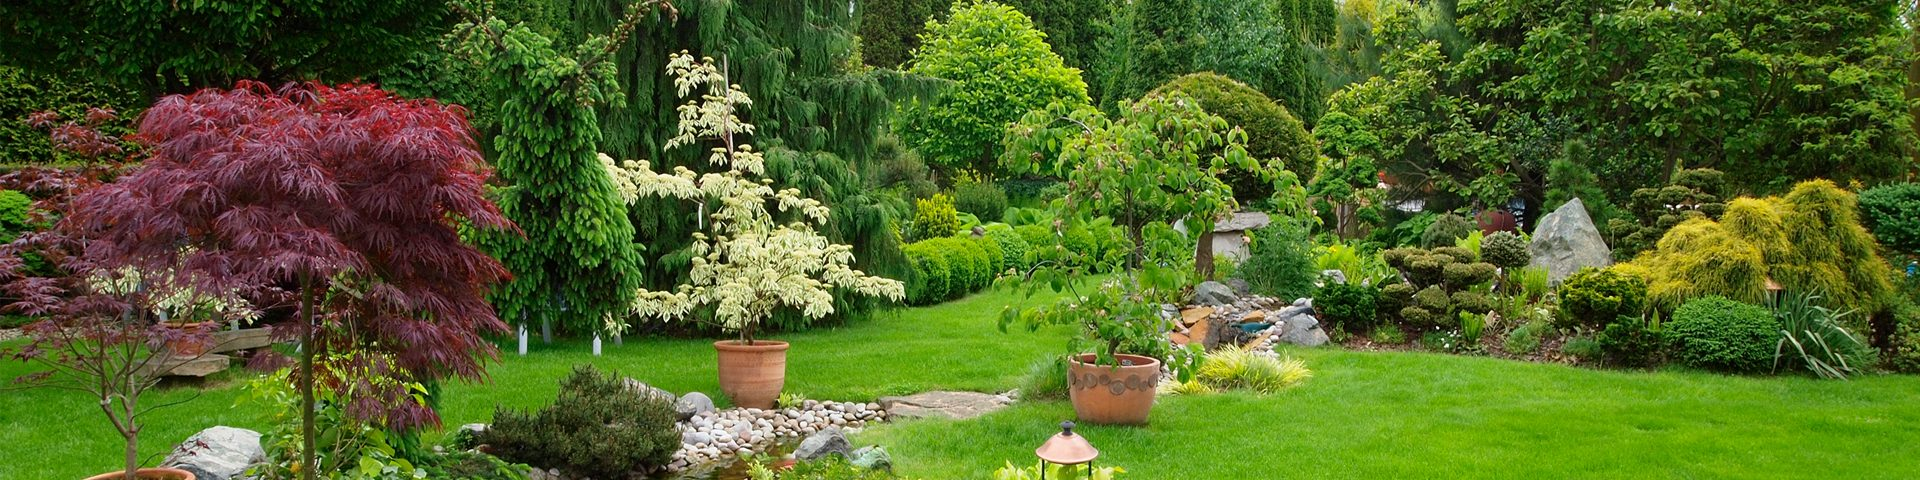 Rain Gardens Landscaping Perth Diy Landscaping Ideas For Your